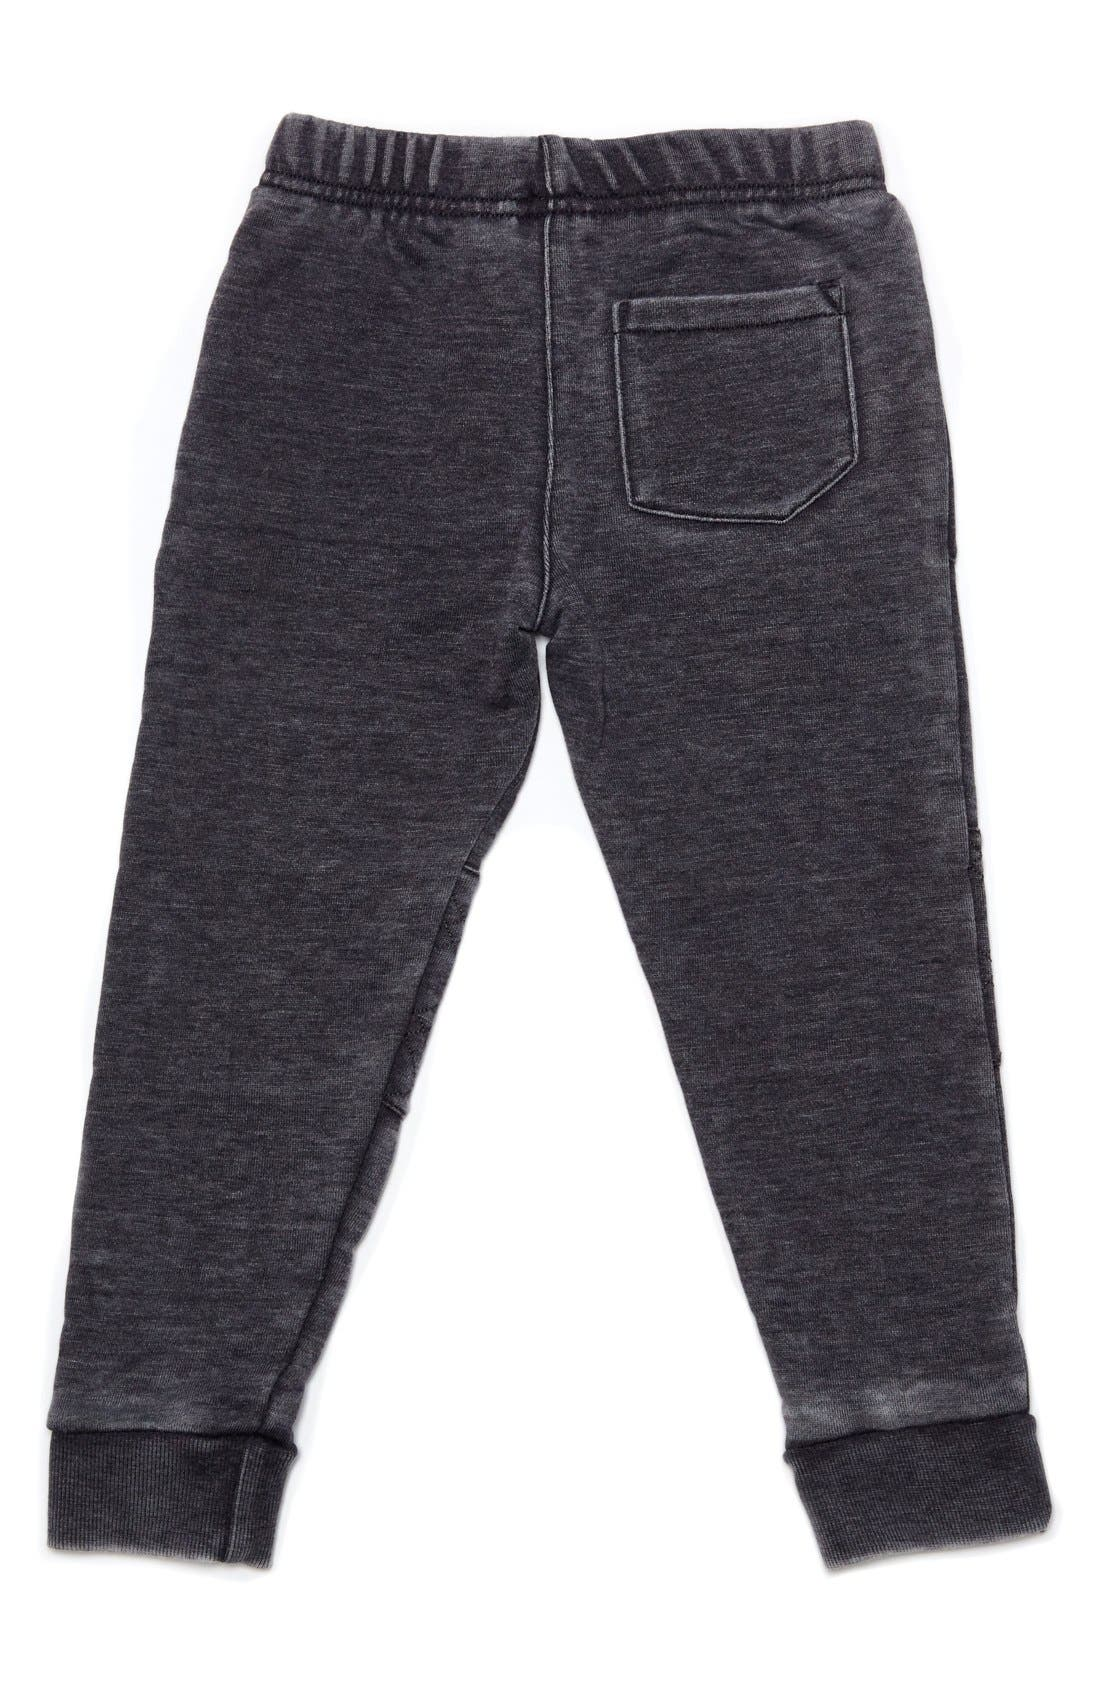 Quilted Jogger Pants,                             Alternate thumbnail 2, color,                             020